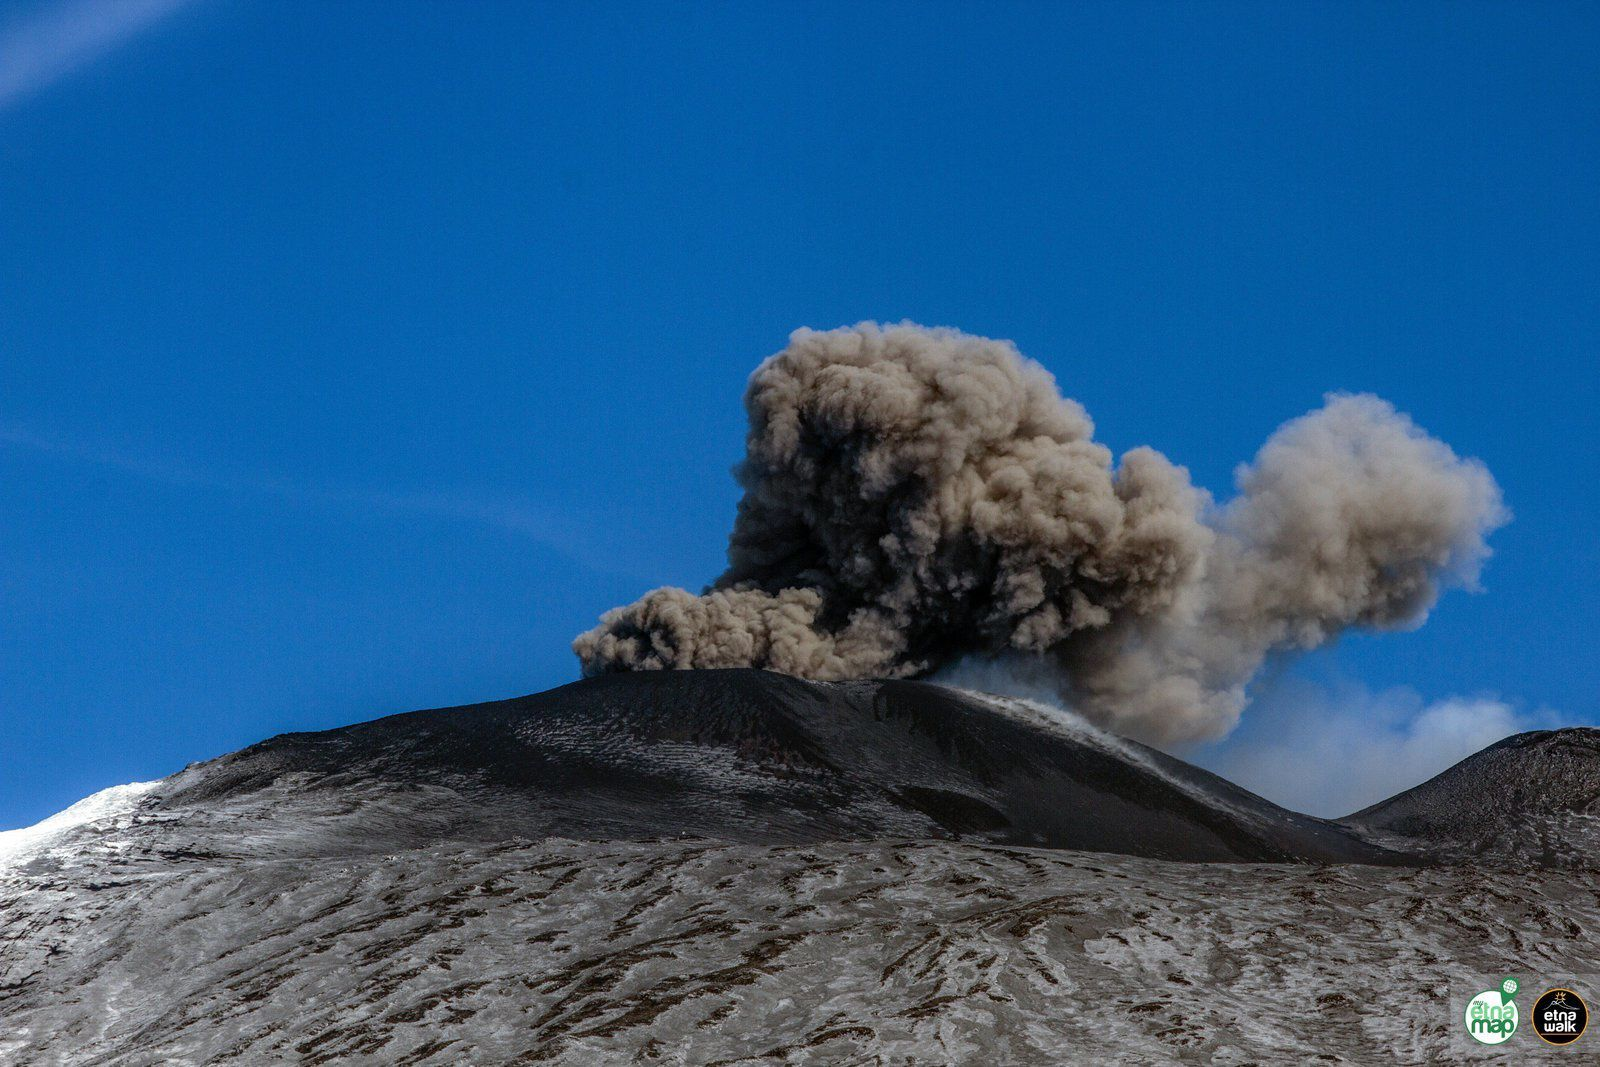 Etna - ash emissions by the Bocca Nuova on 27.01.2019 - Marco Restivo / EtnaWalk photos